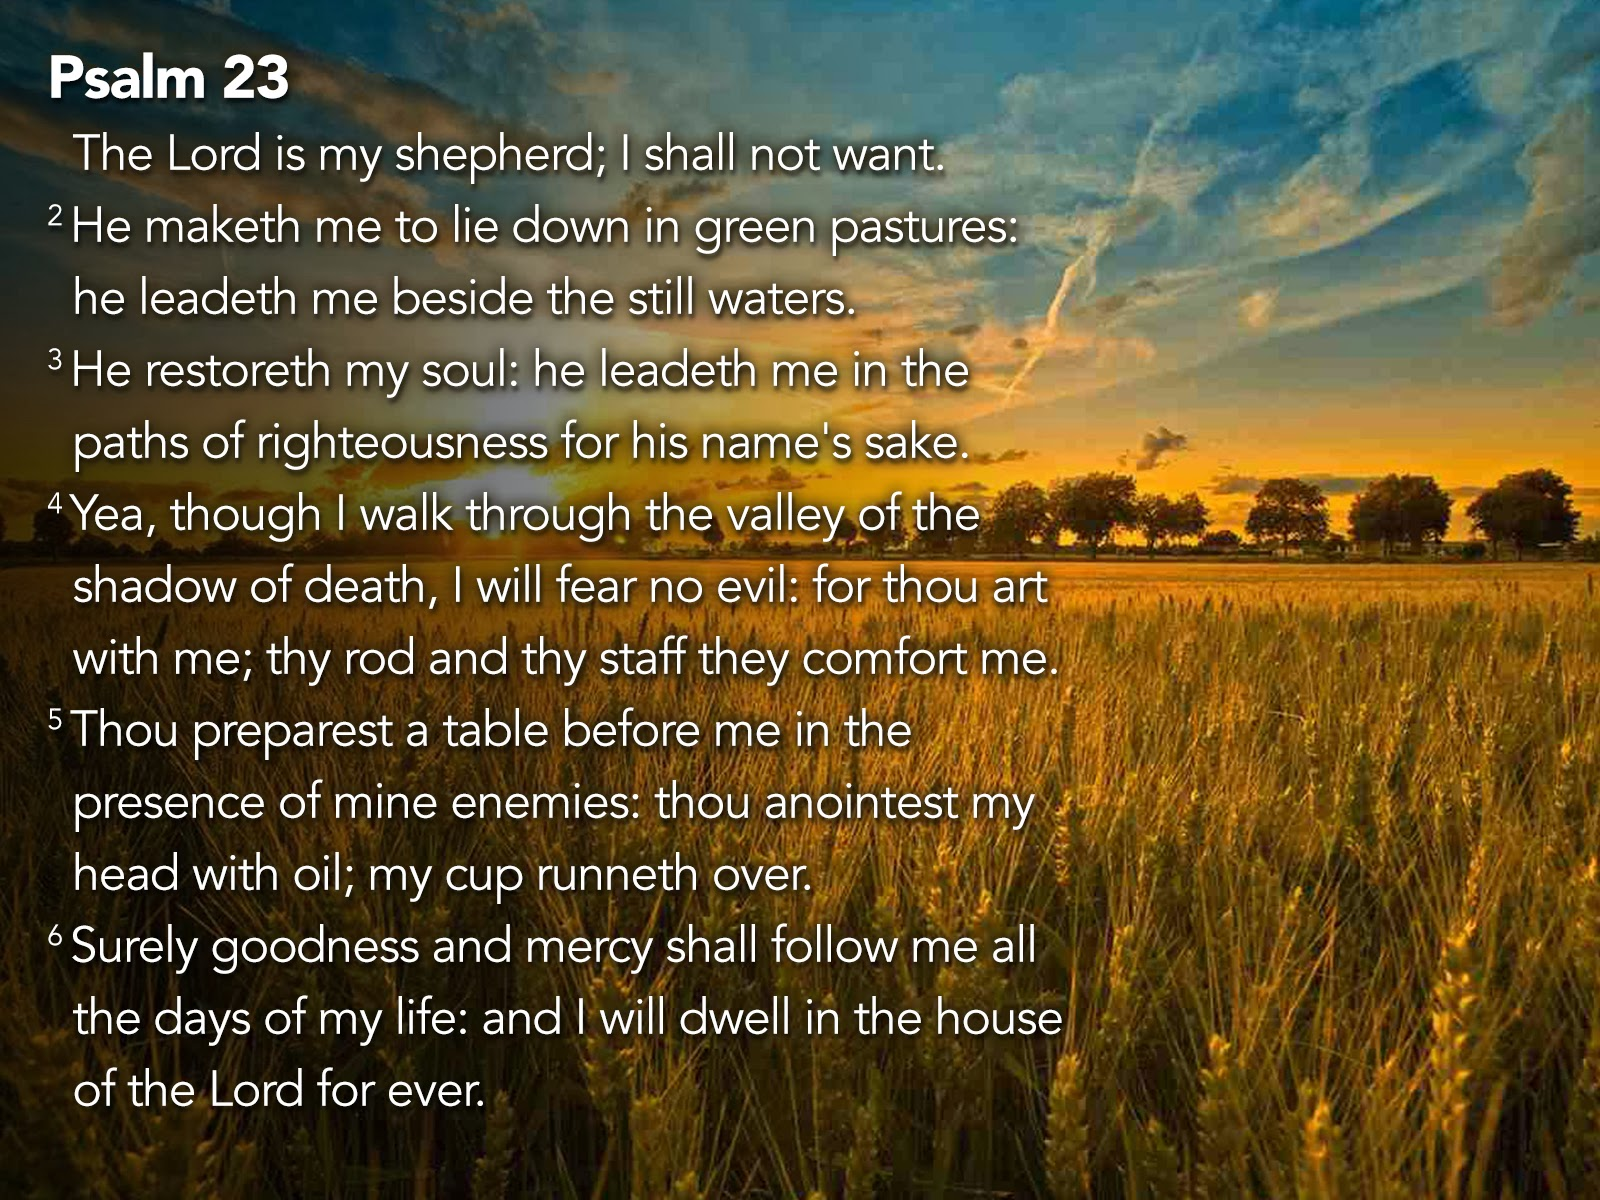 Psalm 23 Images The 23rd psalm which is 1600x1200